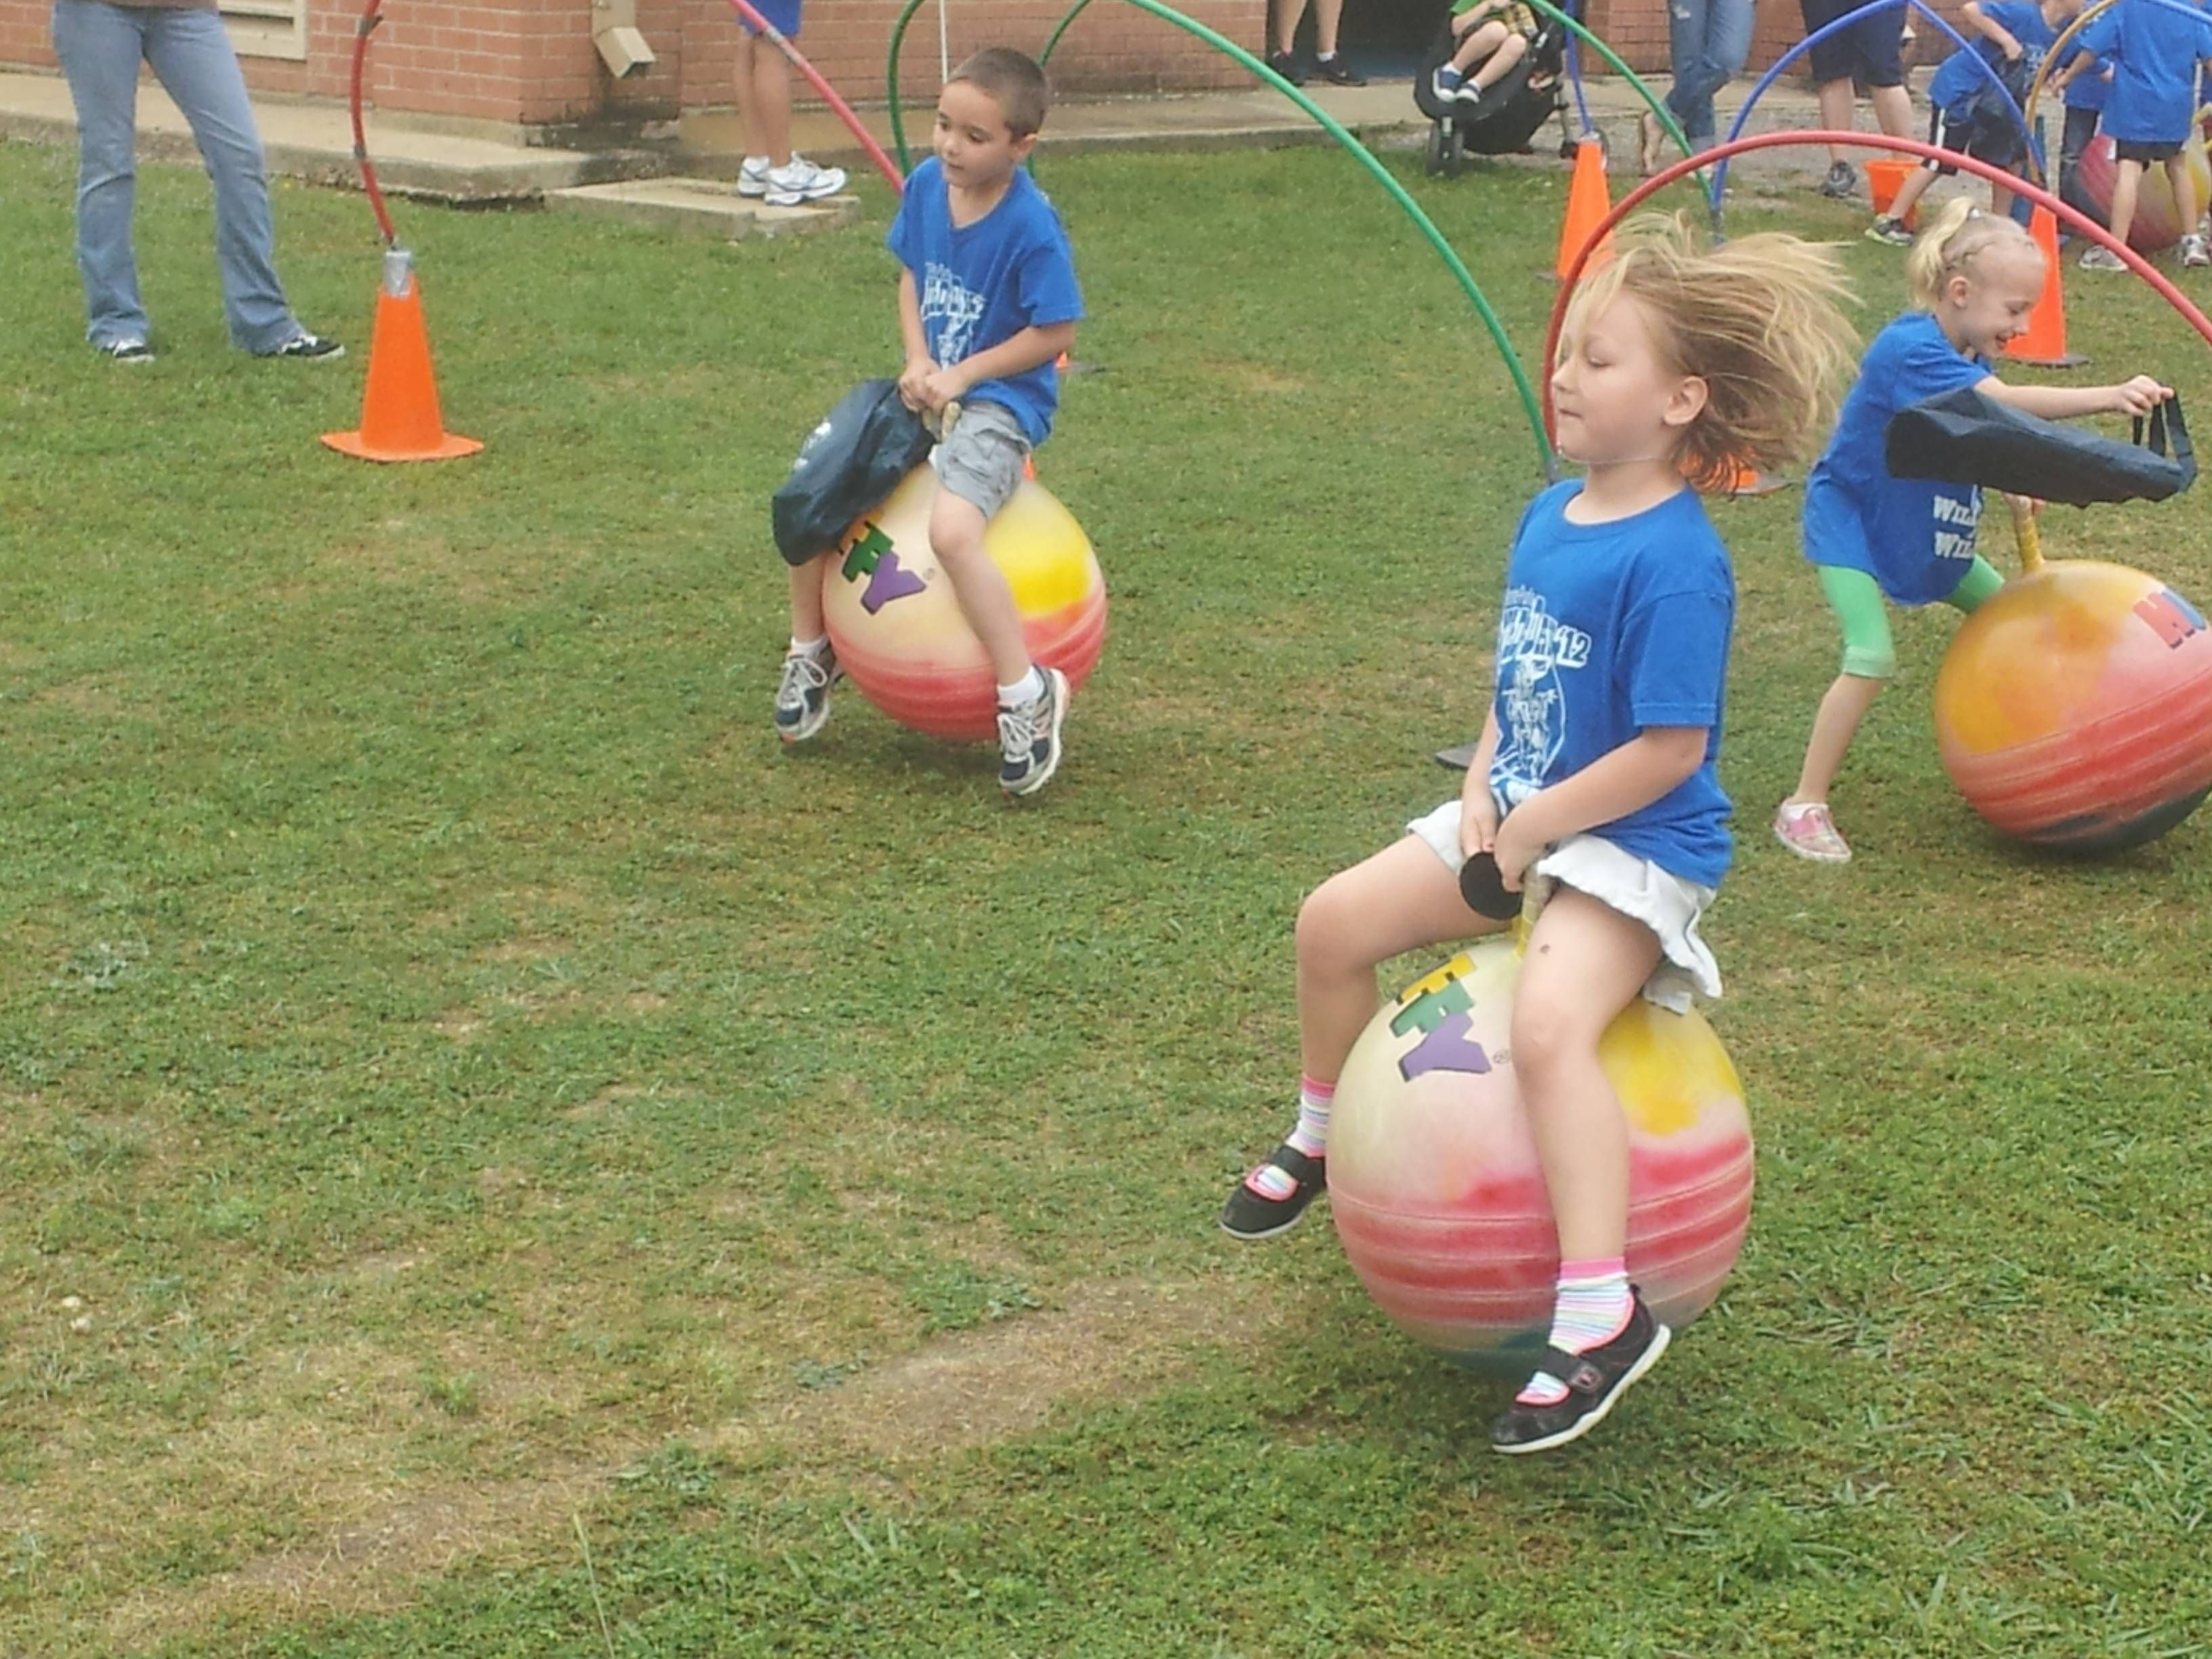 ANNIE PURL FIELD DAY IS THE BEST It was non stop fun